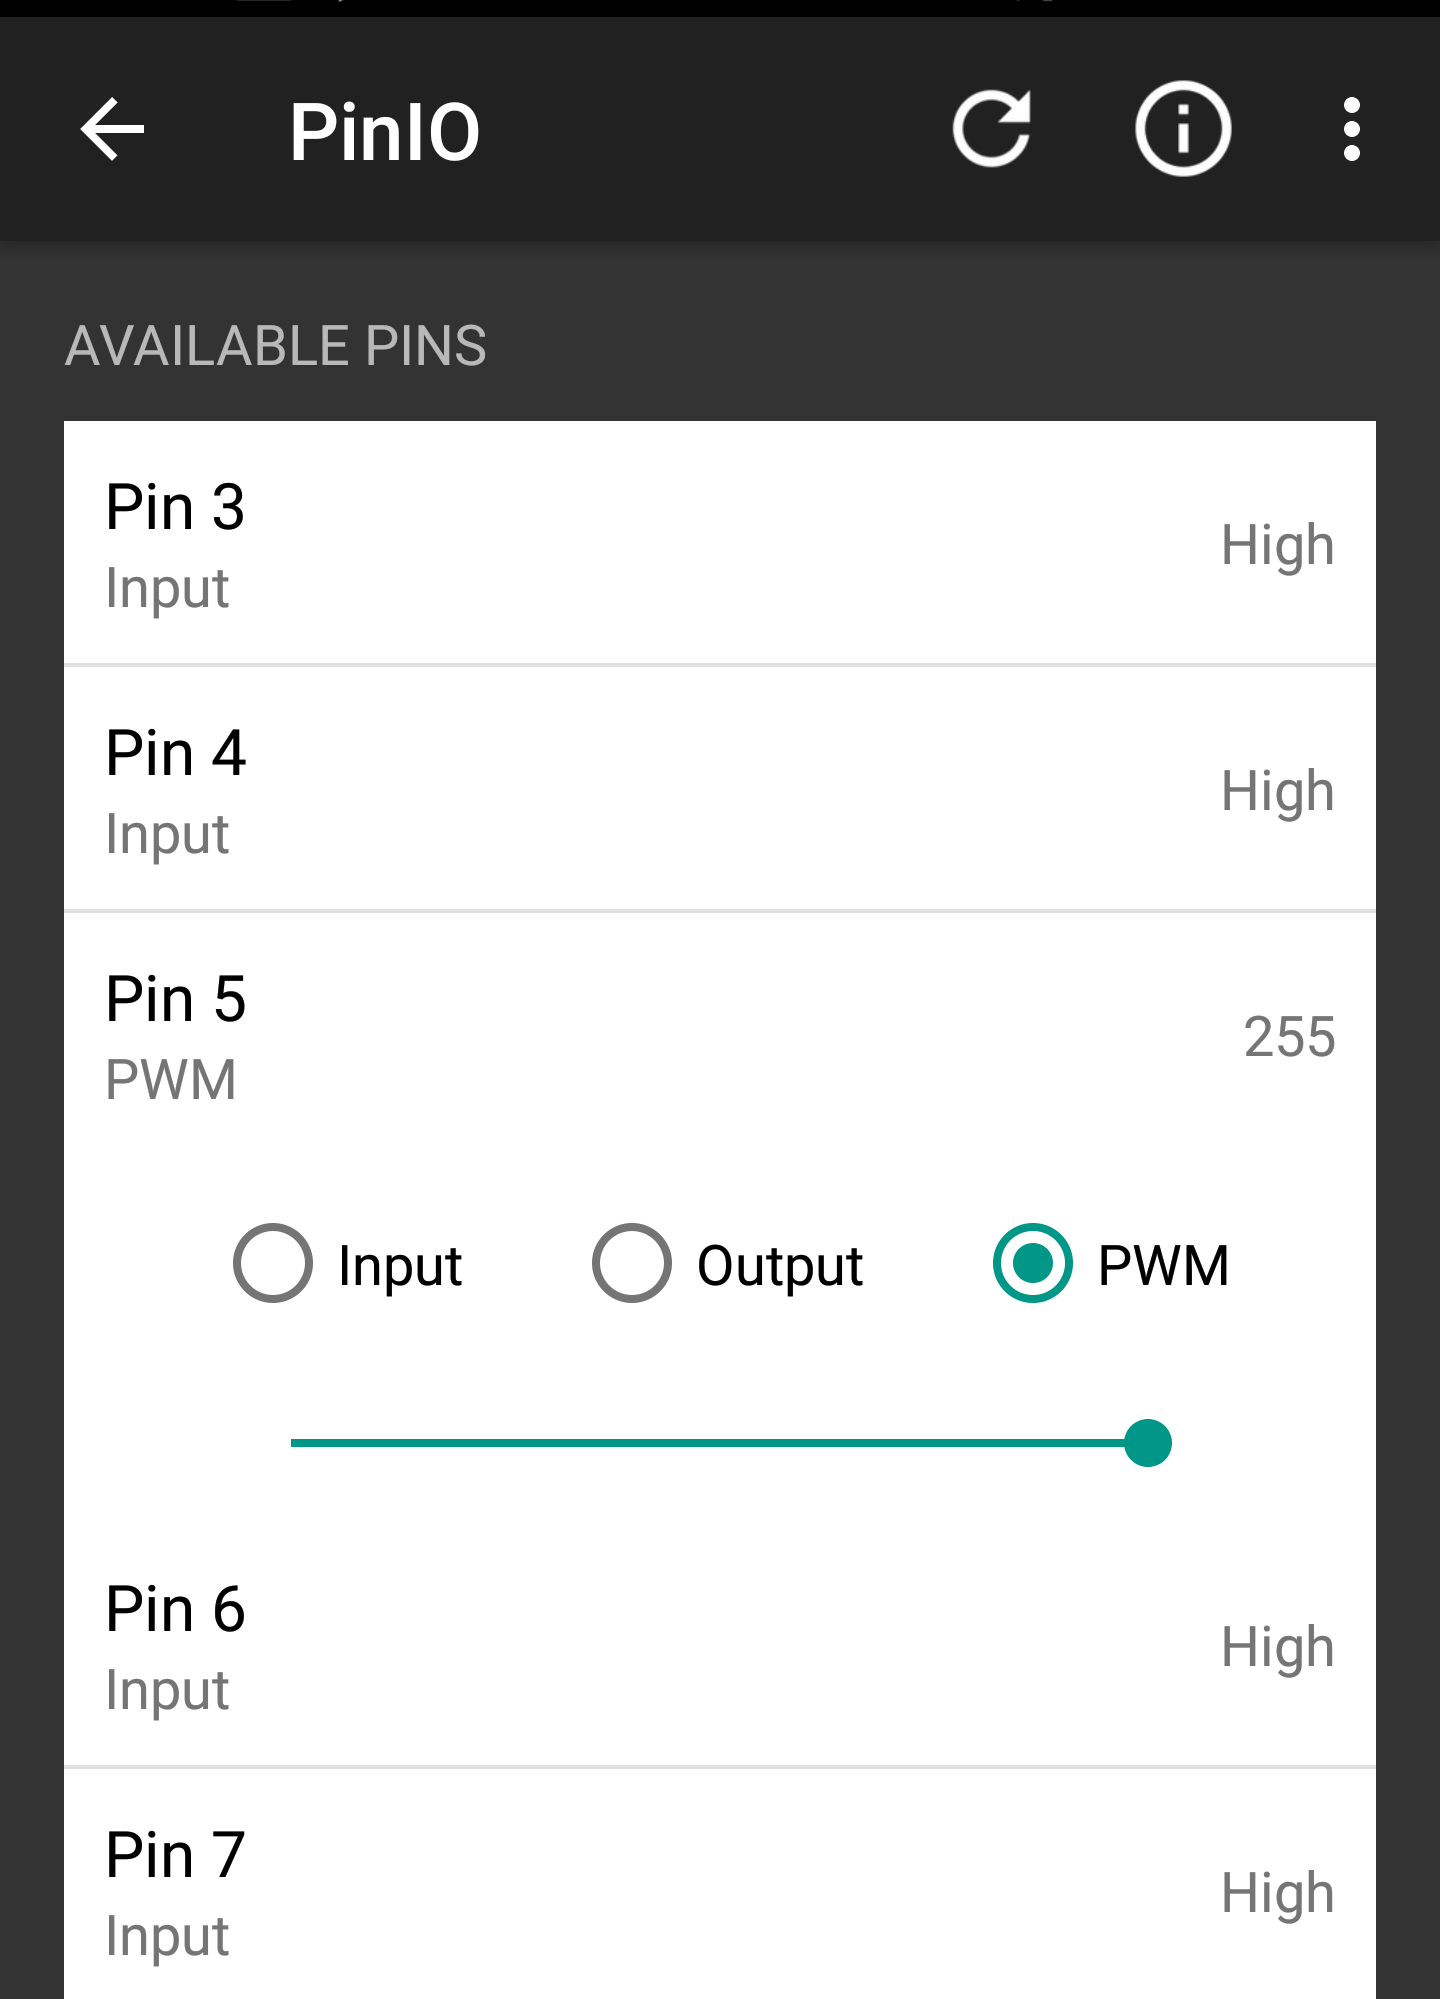 The PWM slider was moved all the way to right to allow for maximum signal strength